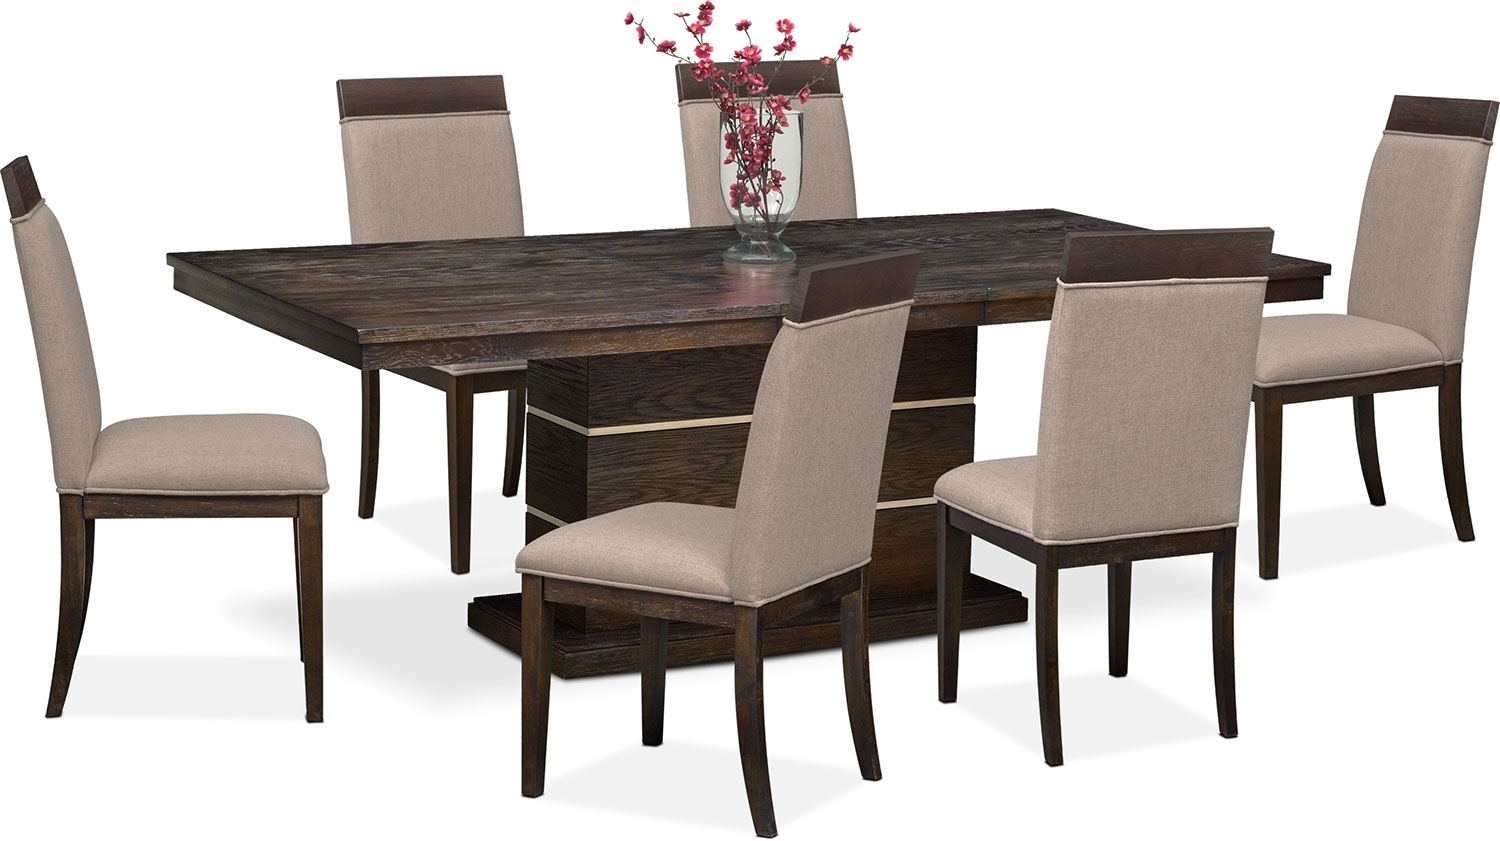 Gavin Pedestal Table And 6 Side Chairs – Brownstone | American Intended For Most Recently Released Gavin Dining Tables (View 2 of 20)